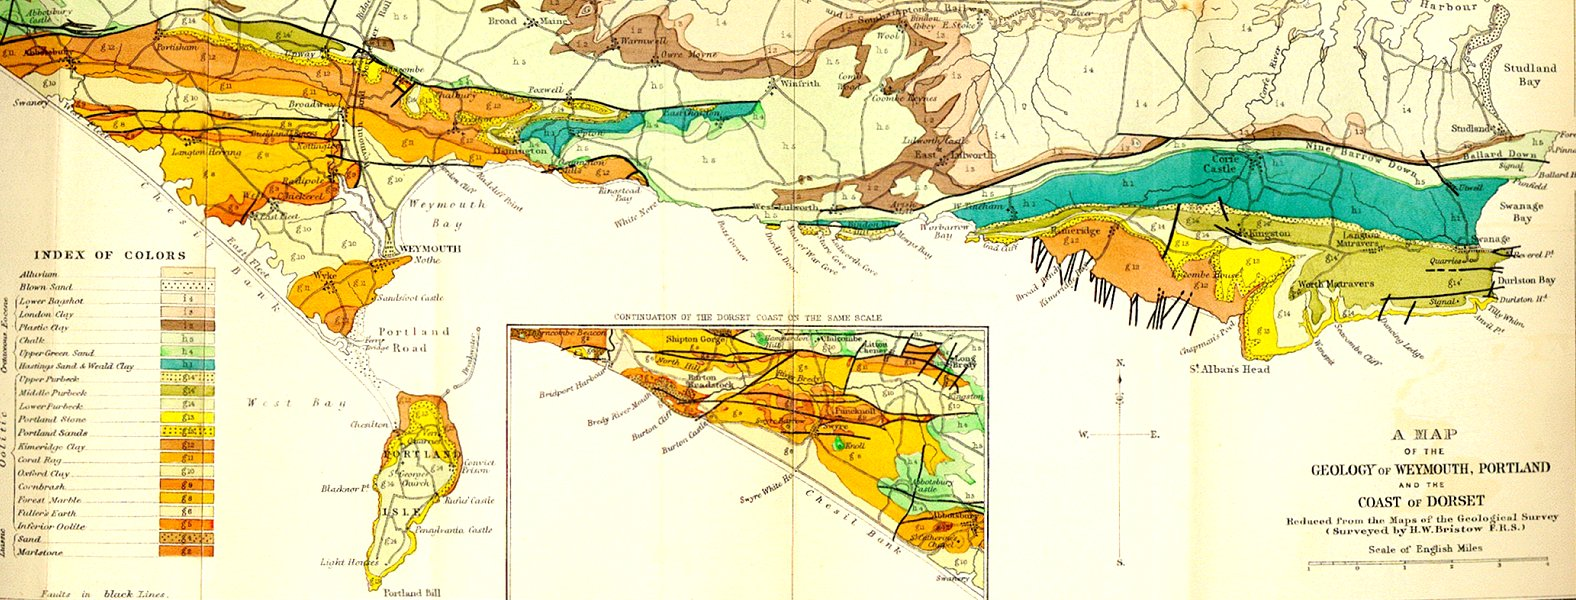 Worksheet. Geology of the Central South Coast of England  Introduction and Maps